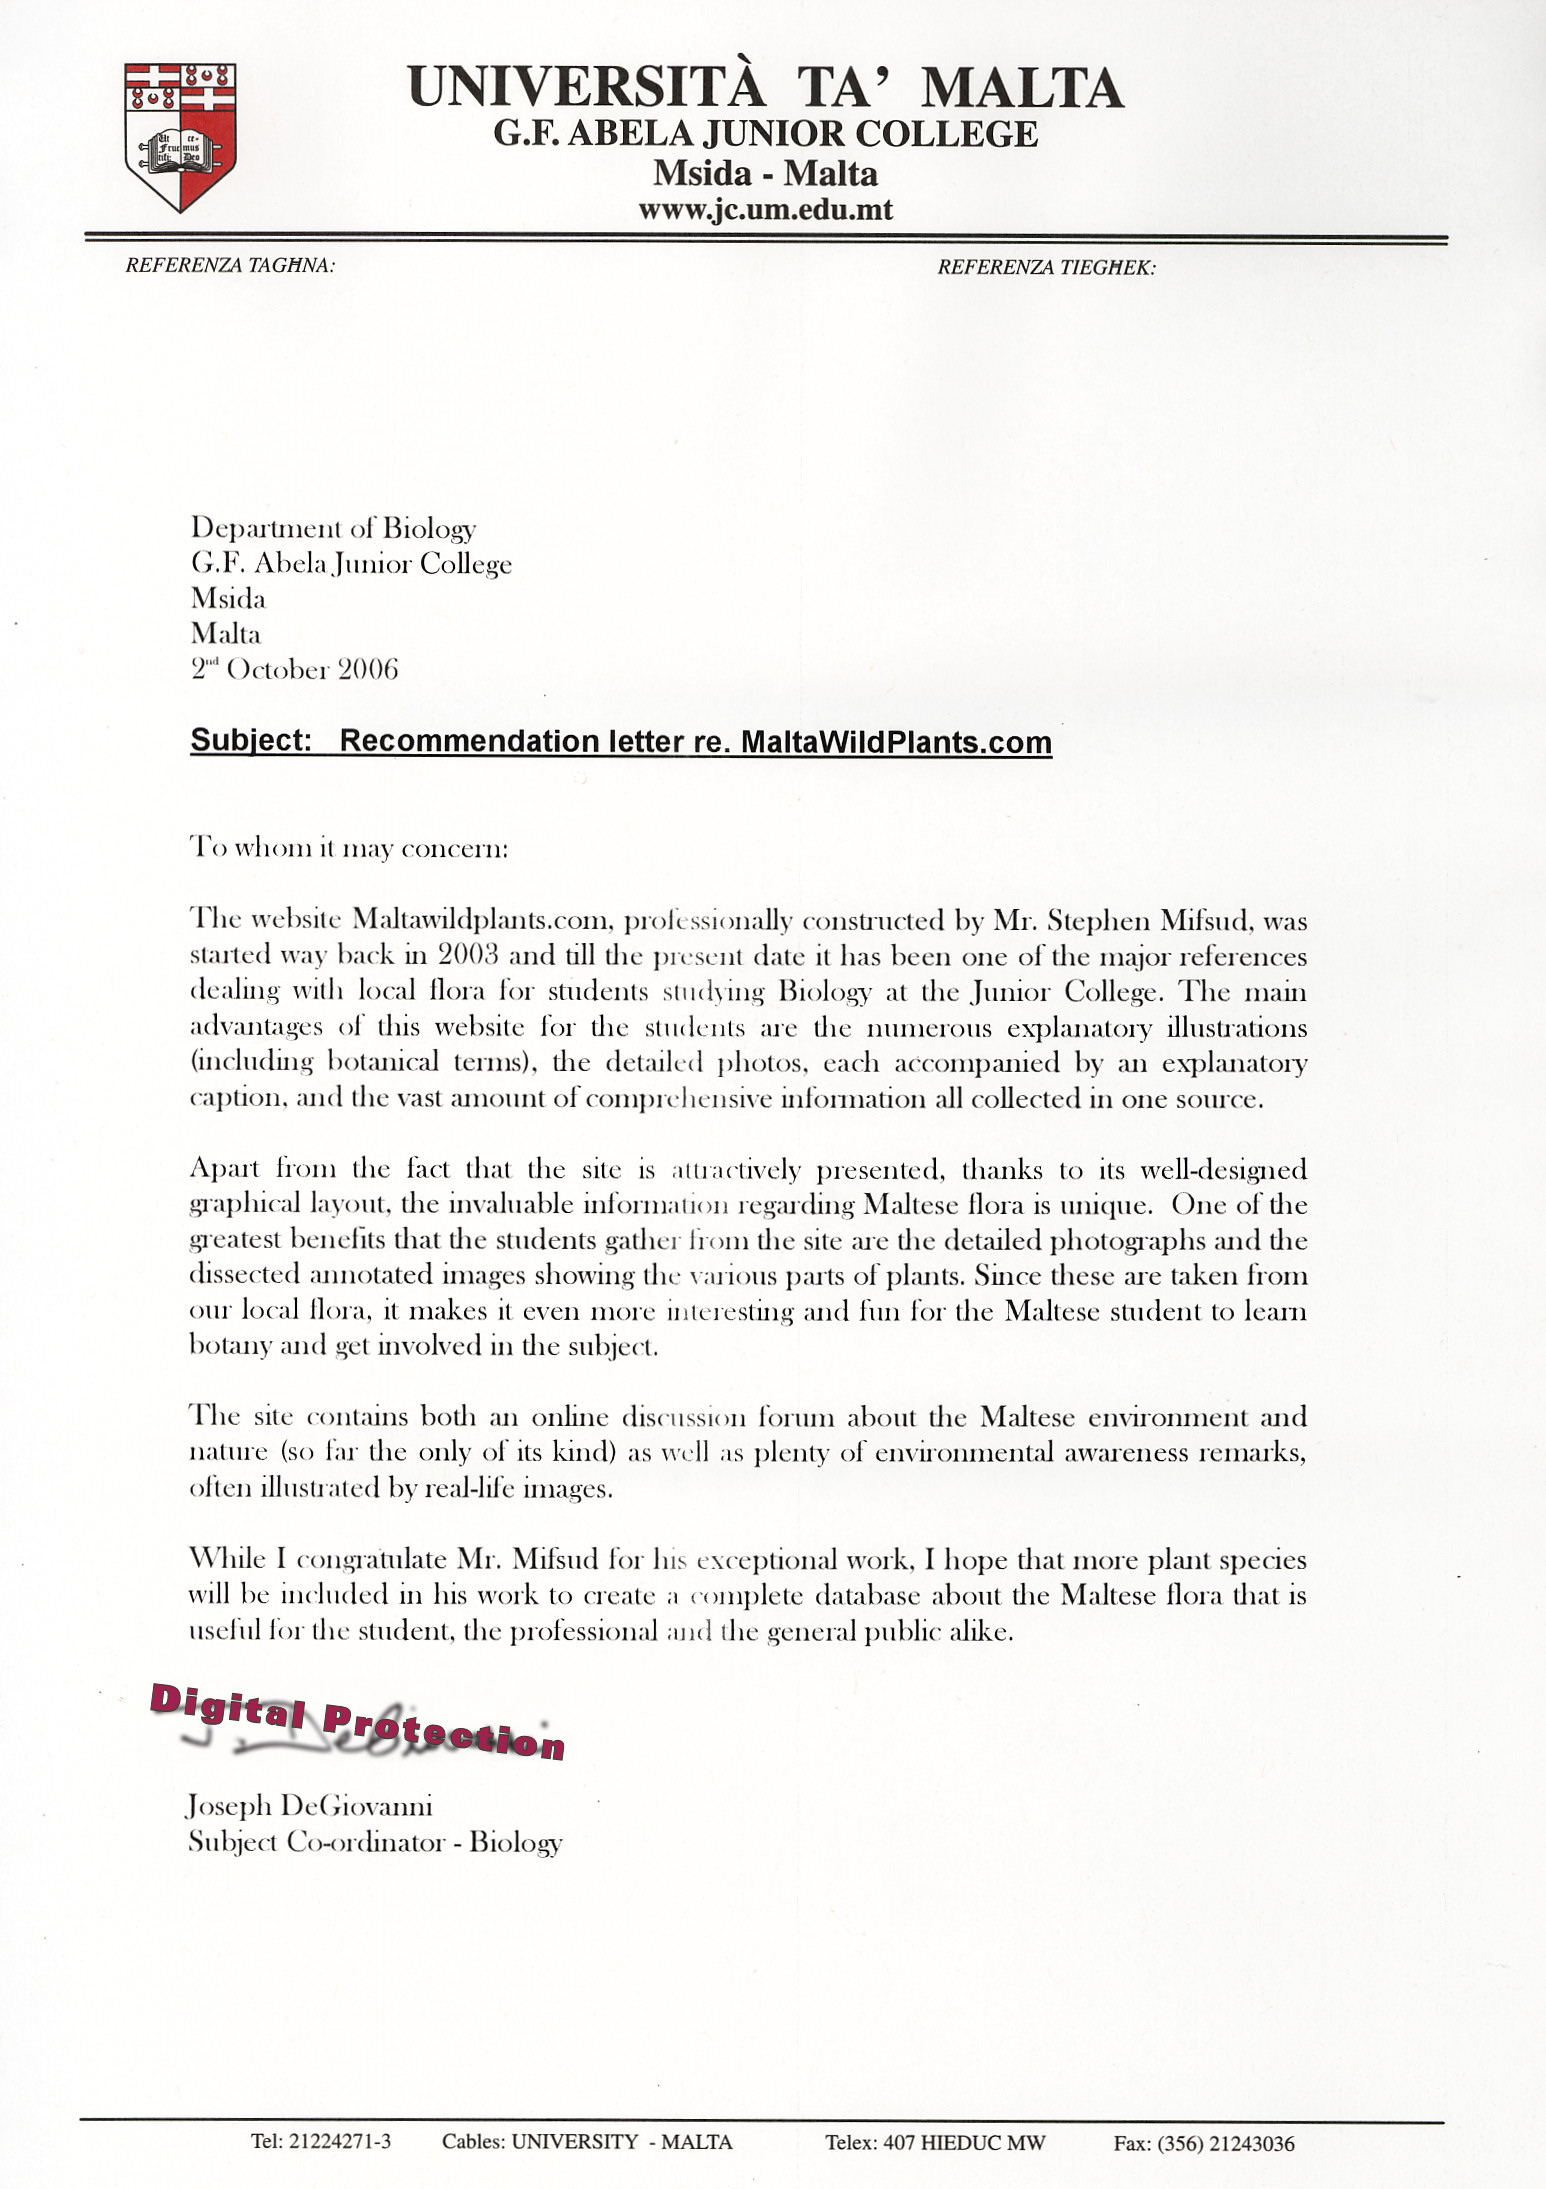 Sample Business Letter For High School Students